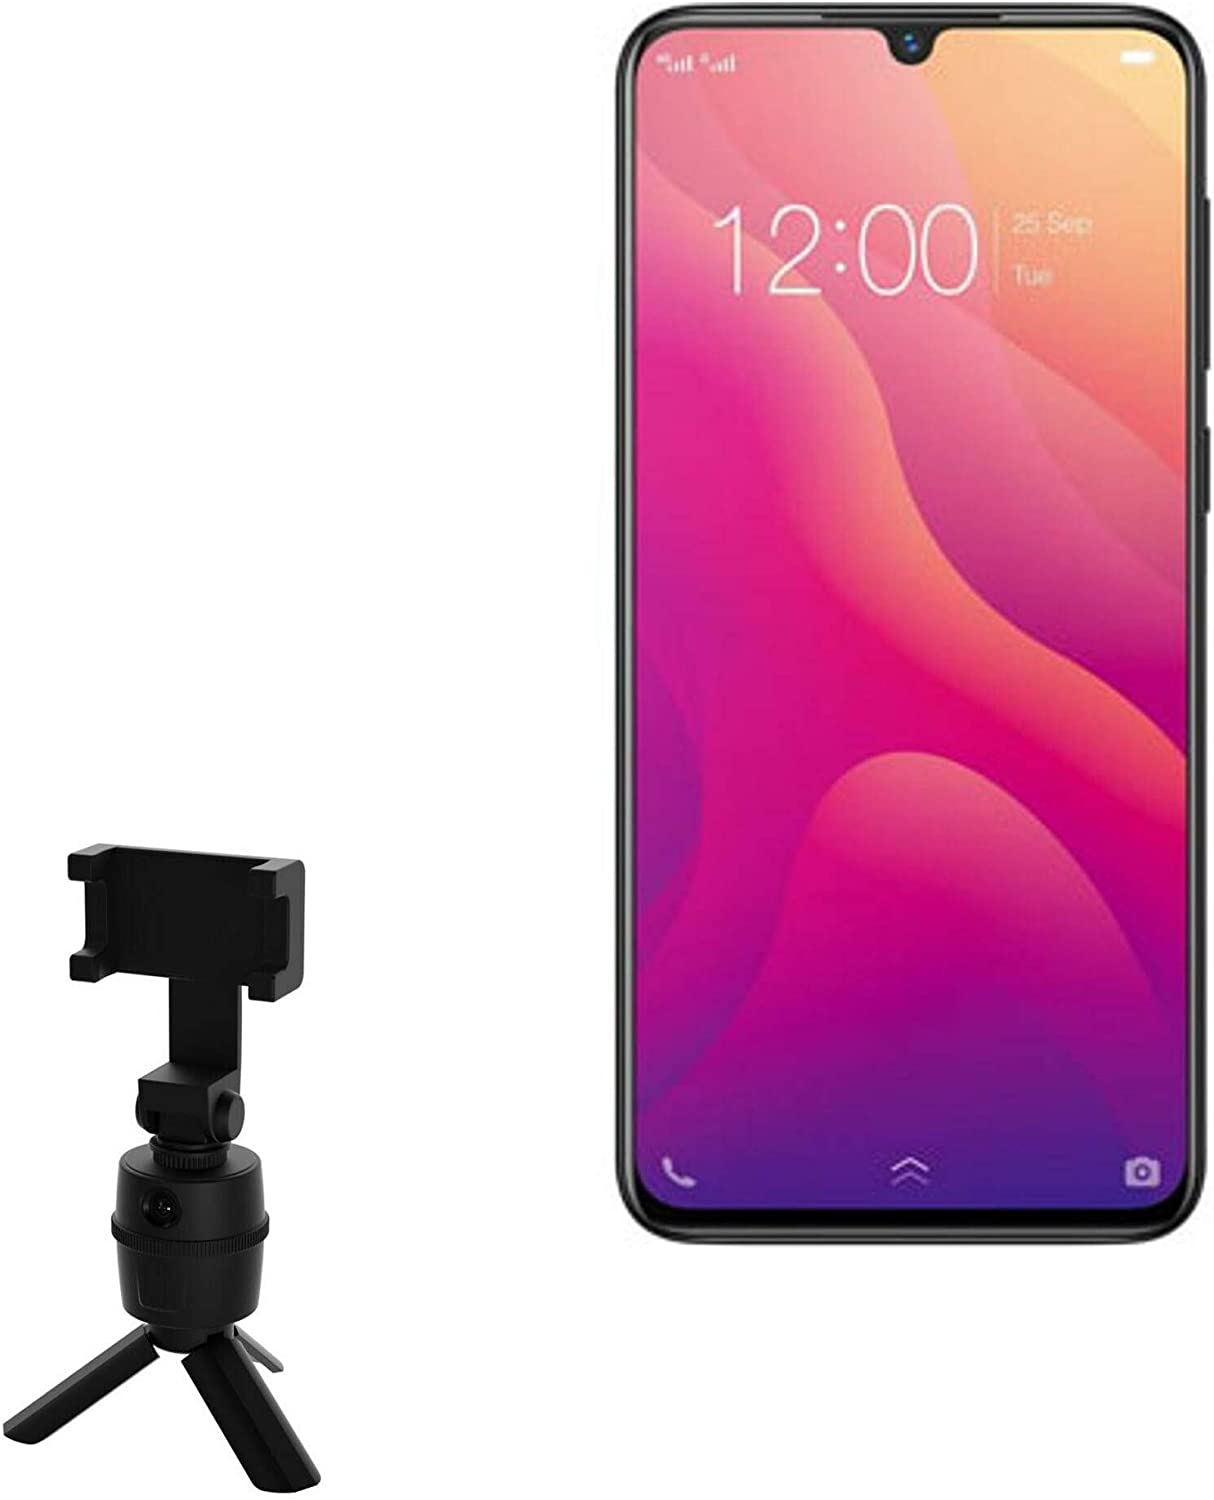 vivo V11 Stand and Max 79% OFF Mount Excellent Faci BoxWave PivotTrack Selfie